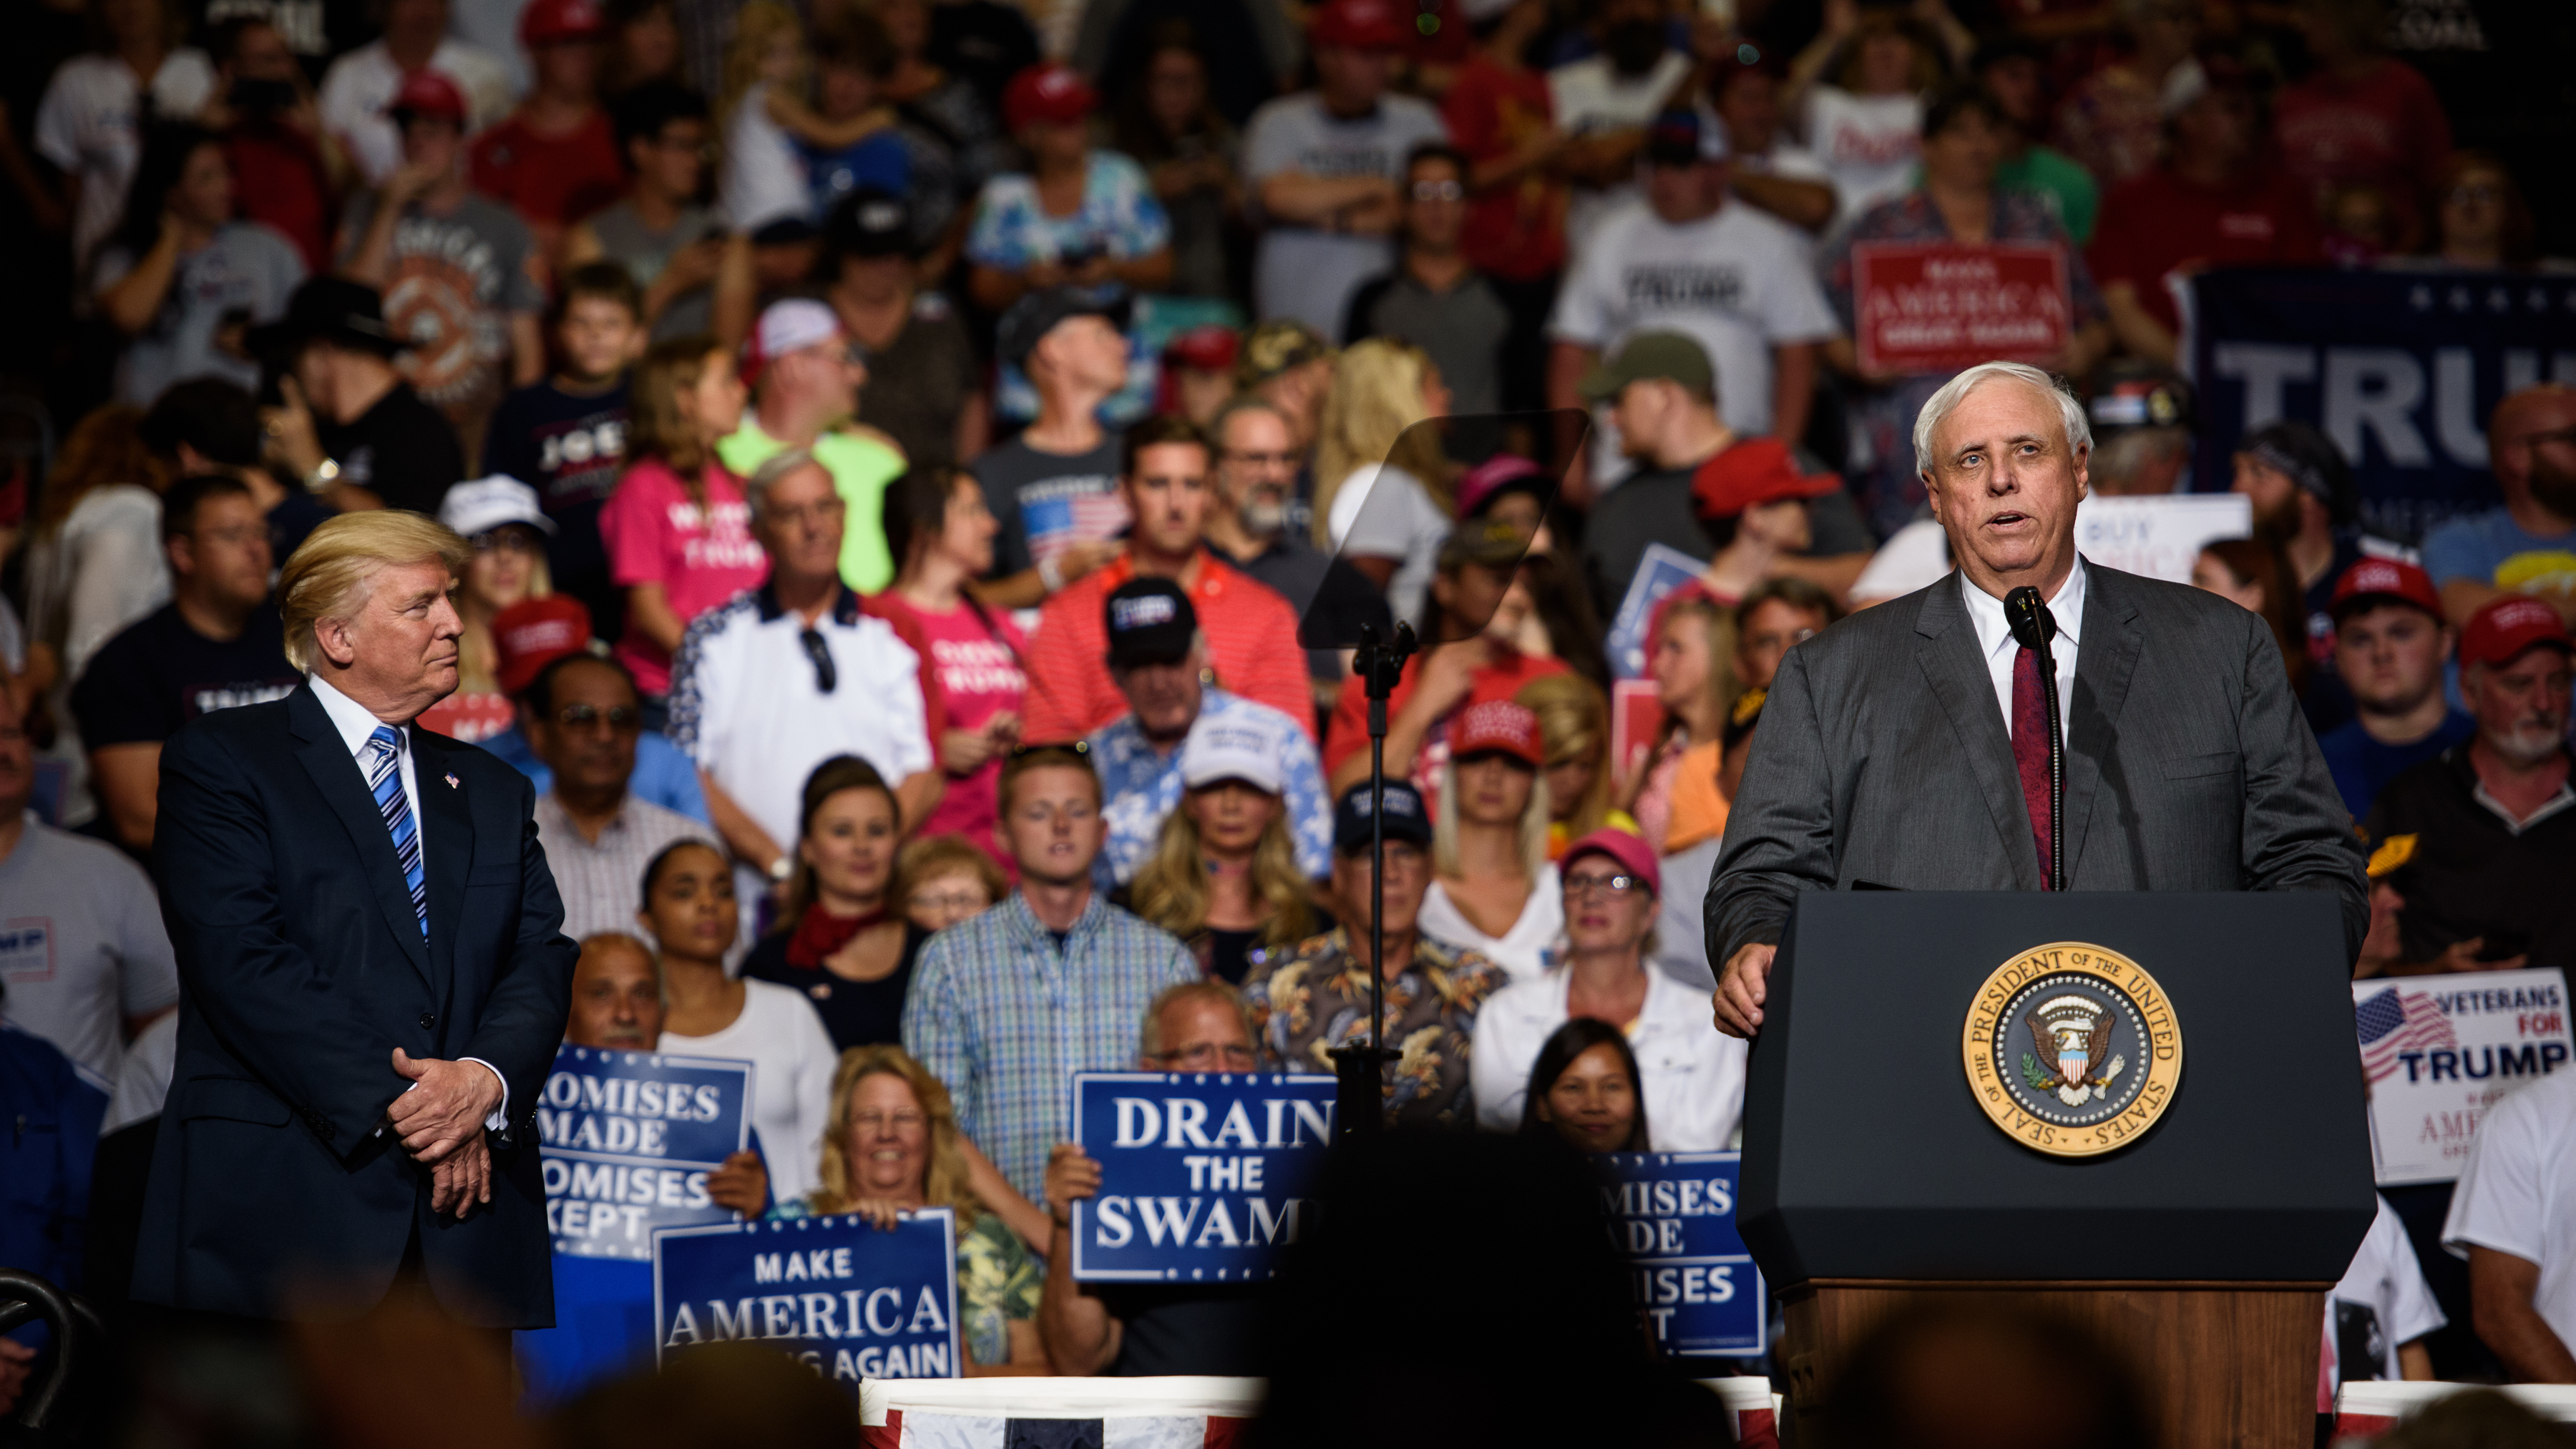 Gov. Jim Justice to switch from Democrat to Republican at Trump rally